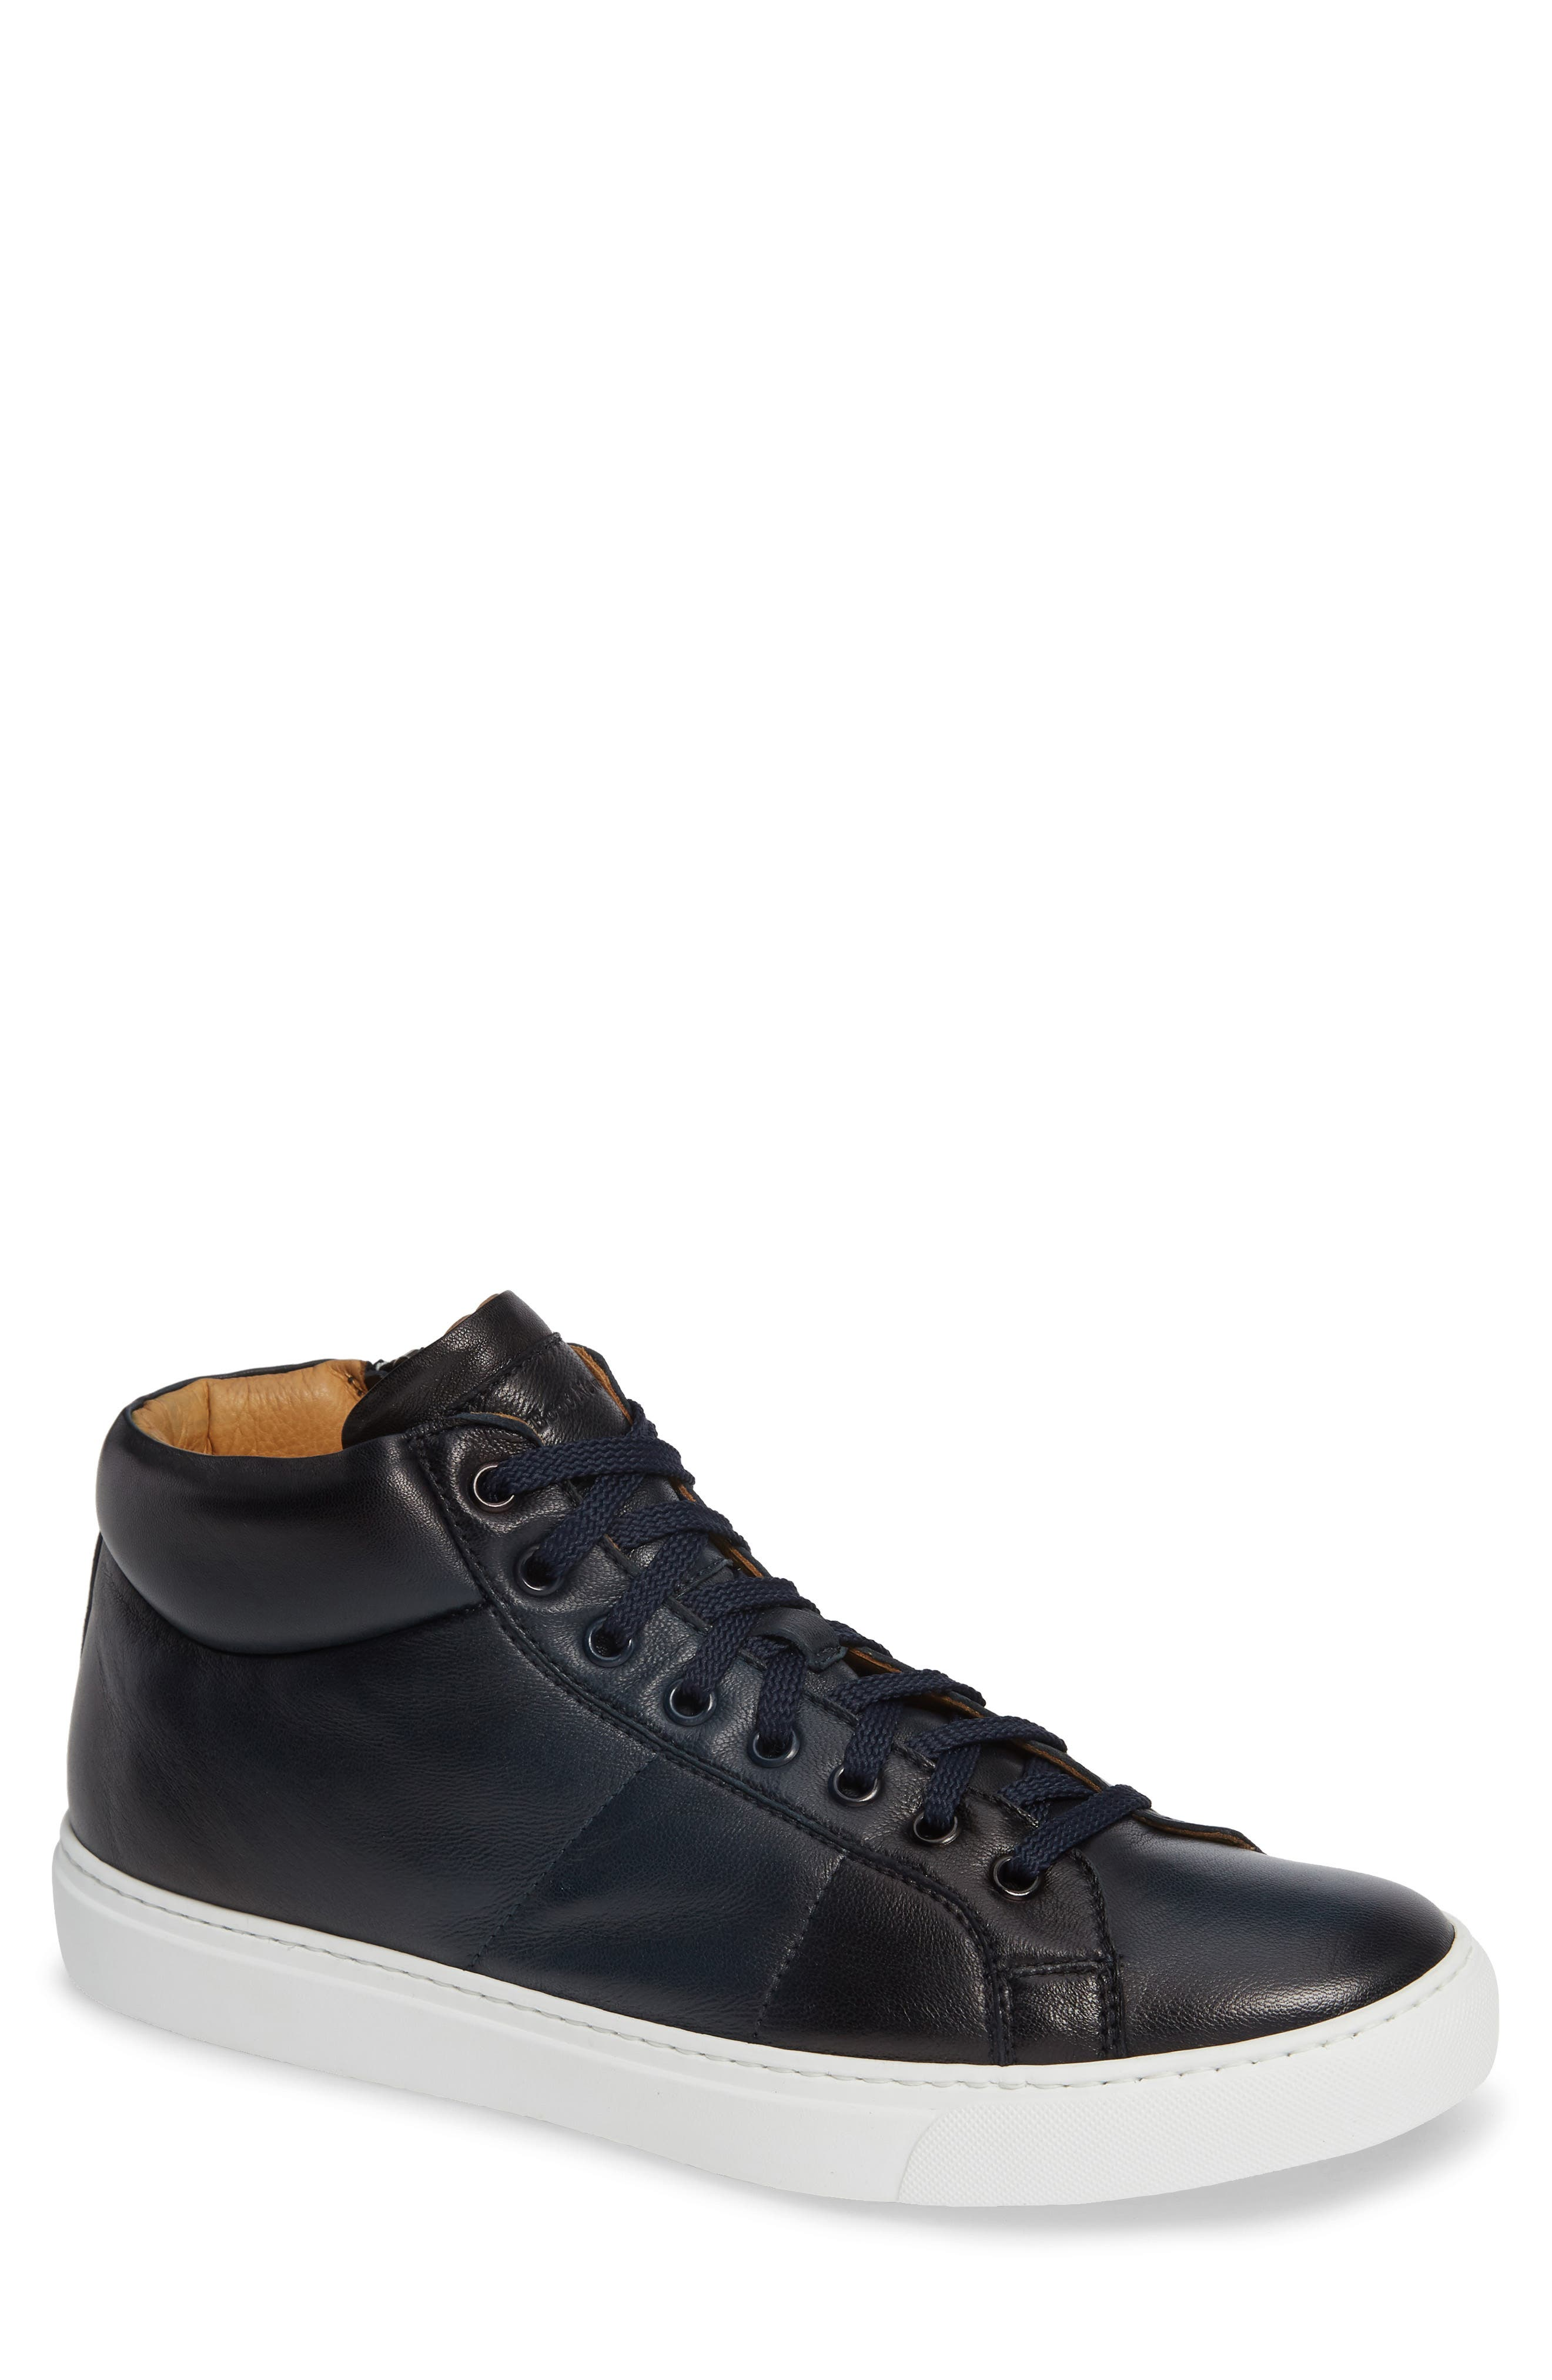 Rayburn Mid Top Sneaker,                         Main,                         color, NAVY LEATHER